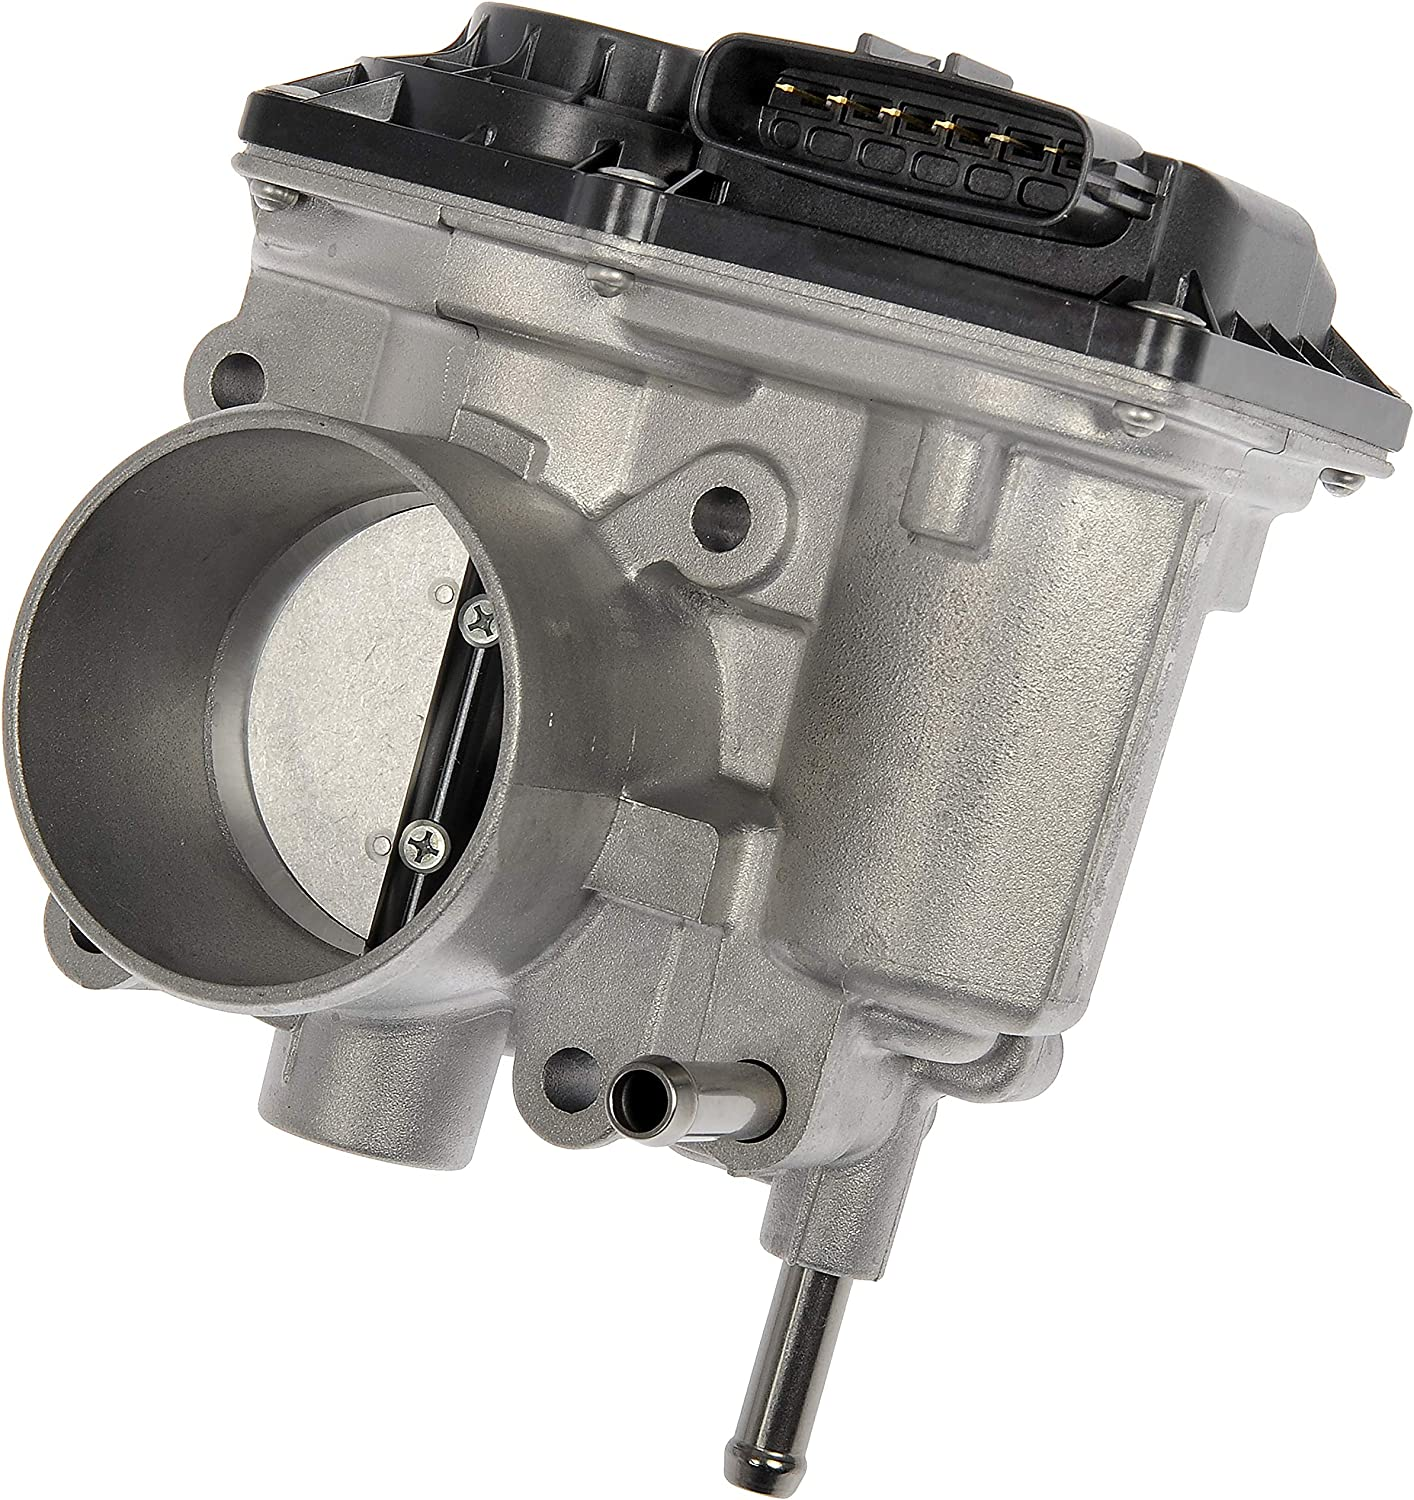 Max 44% OFF Dorman 977-069 Fuel Injection Throttle for Scion Select Challenge the lowest price Body Mod